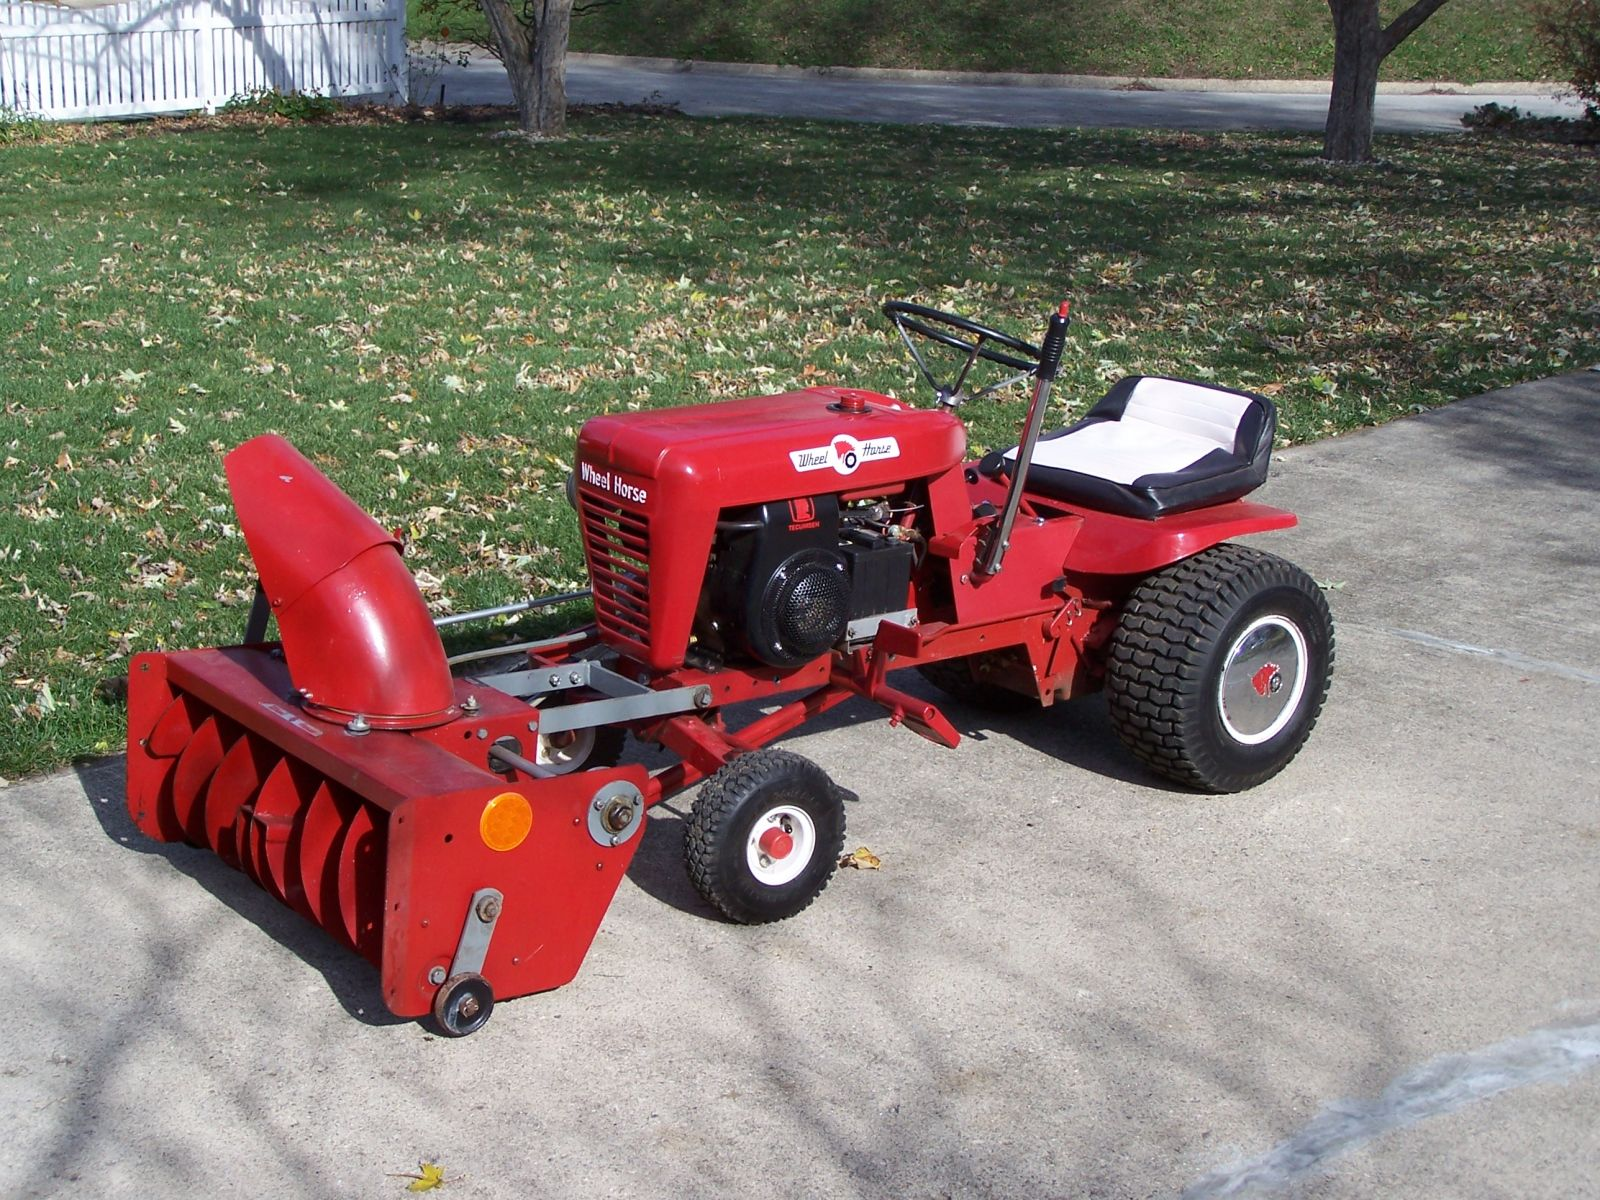 1967 L-157 with ST-324 Snowthrower